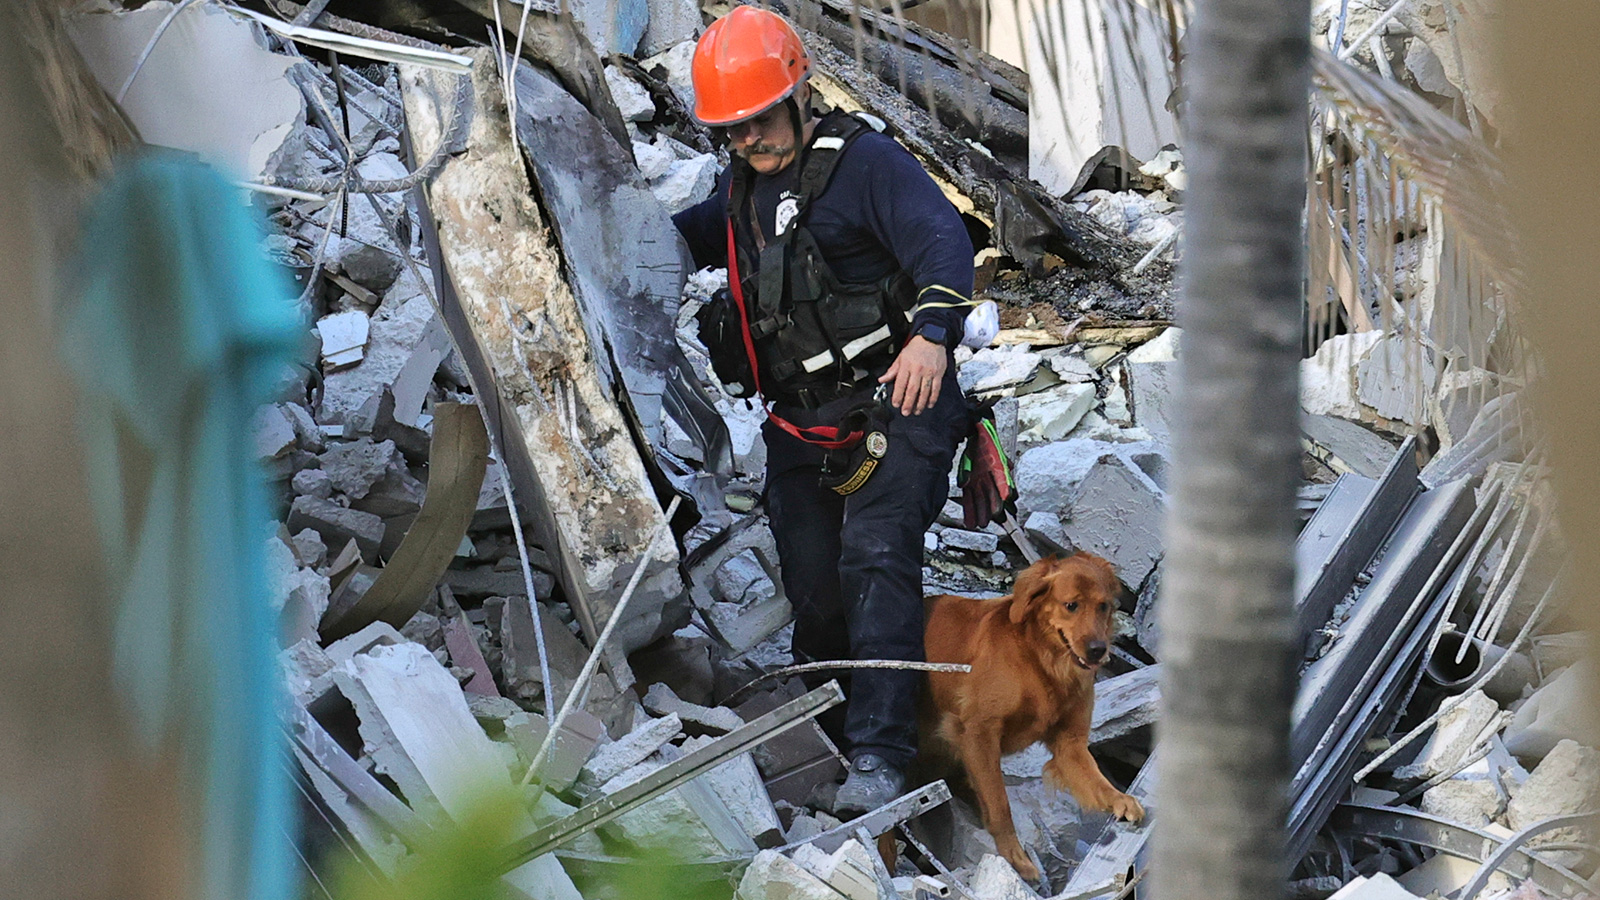 Rescuers battle fire, noise and shifting steel and concrete as they scramble to save lives